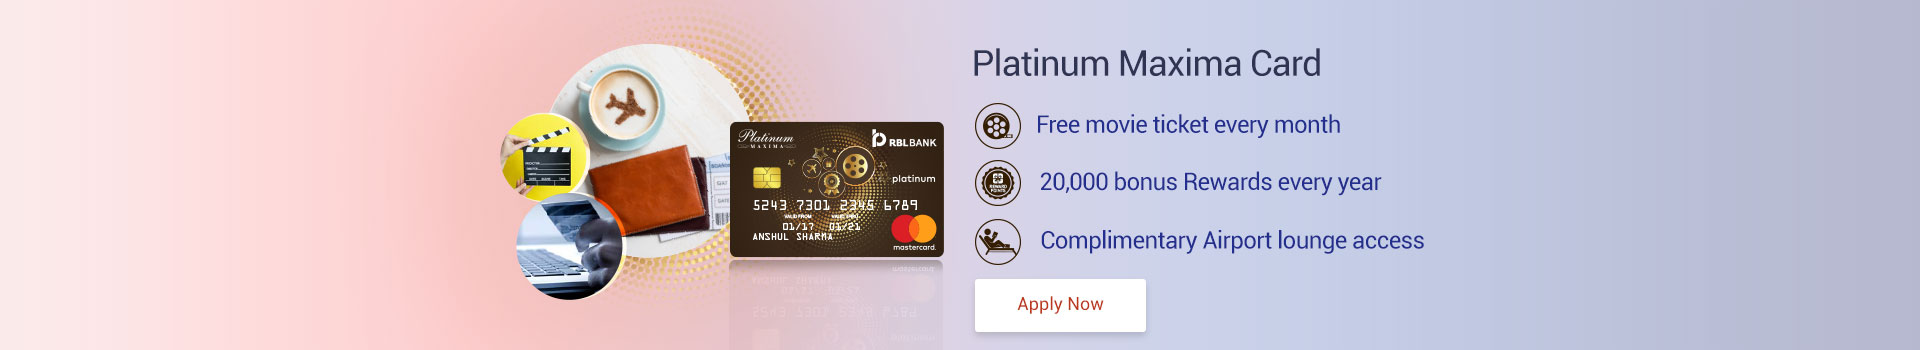 RBL Bank Platinum Maxima Credit Card Review